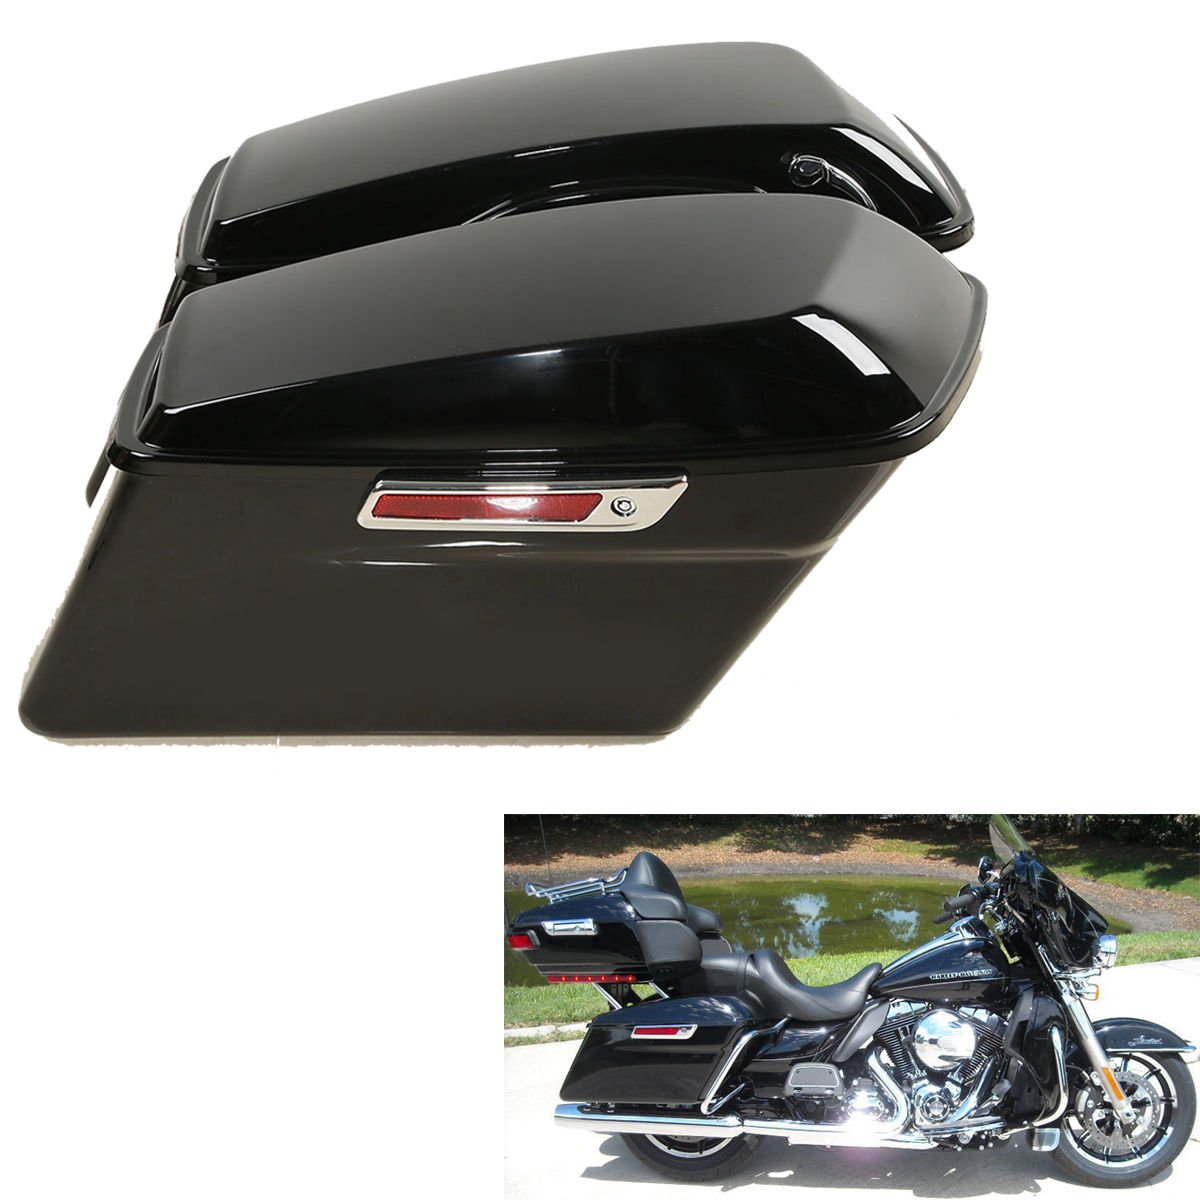 TCMT Motorcycles Black Hard Saddlebags + Latch Key Lid Fits For Harley Street Road Glide Road King Electra Glide Ultra-Classic FLHR FLHX 2014-2019